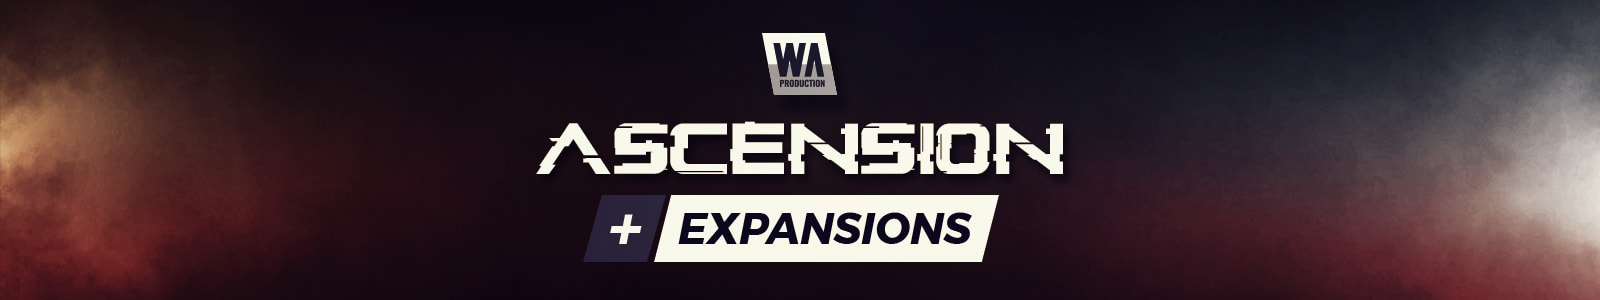 ascension + expansions